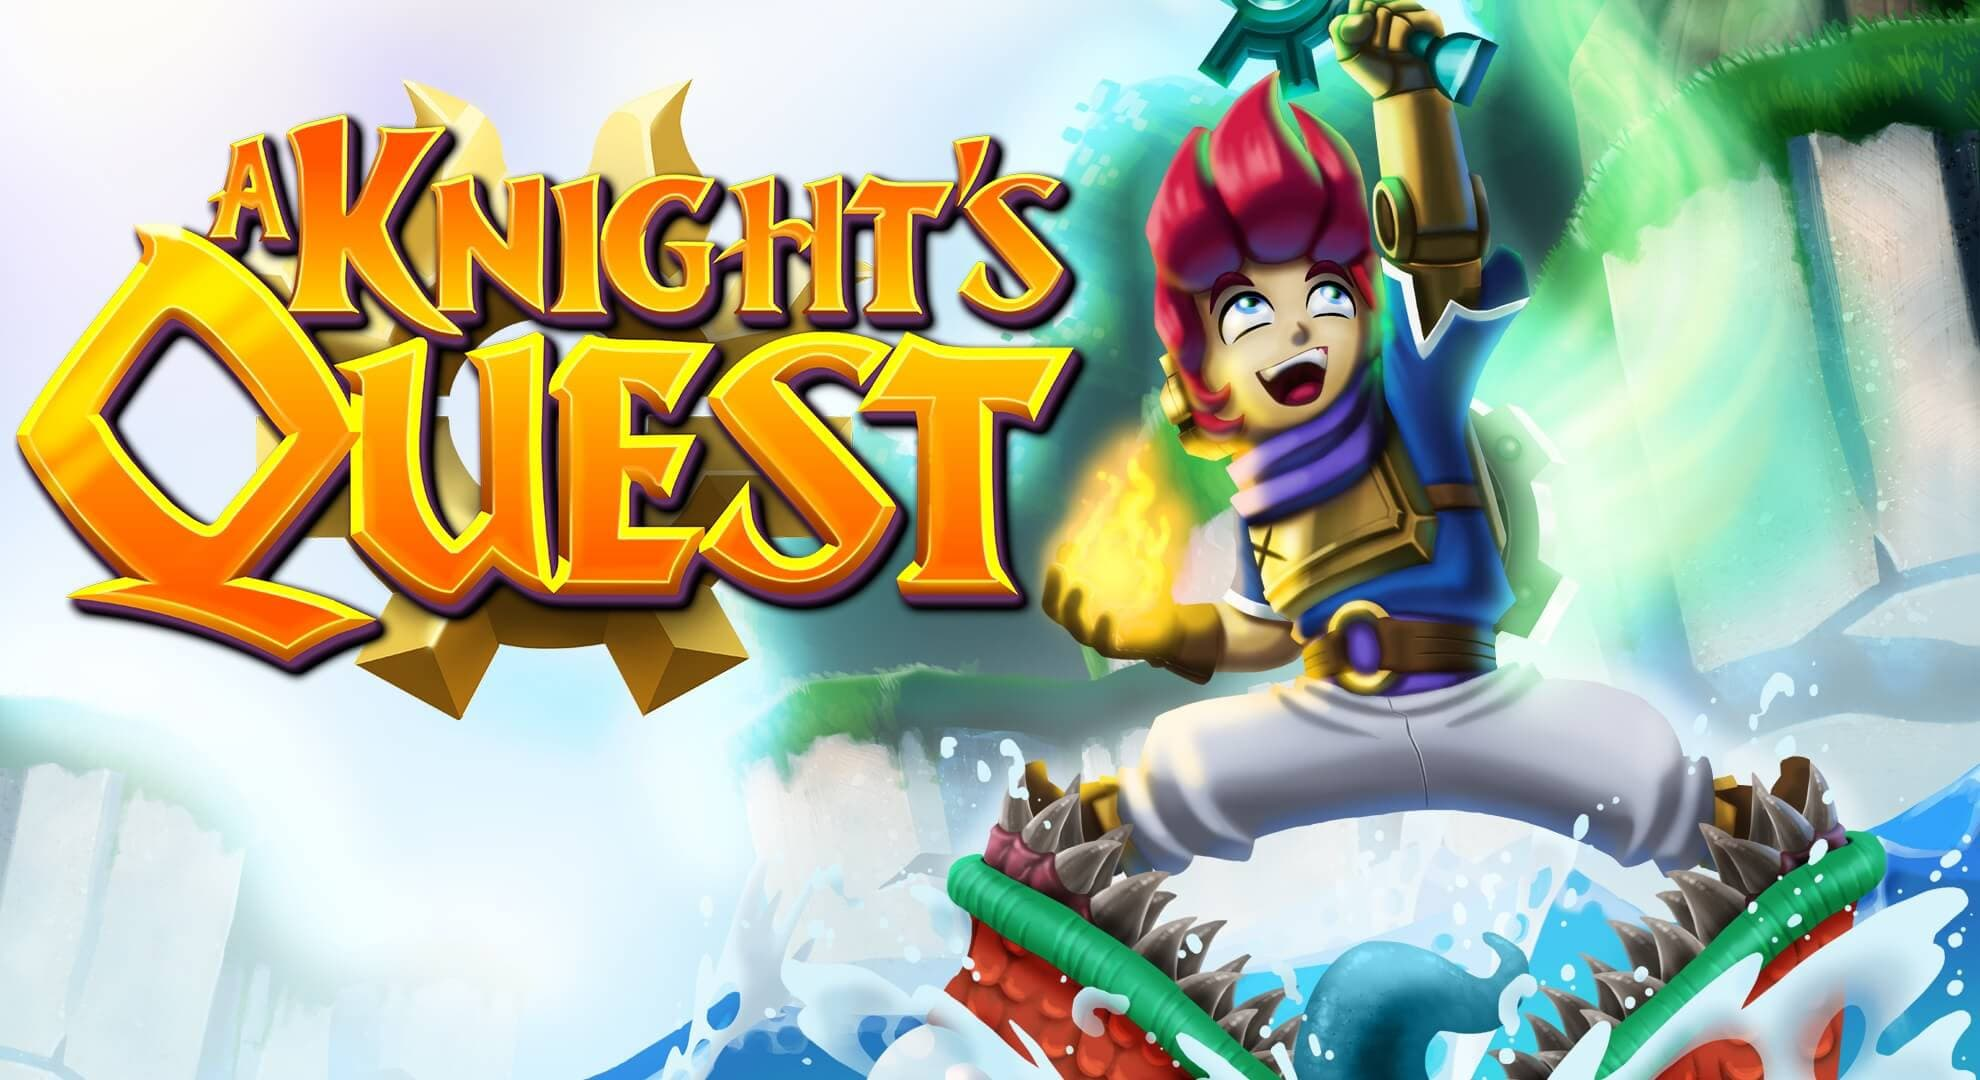 Jaquette A Knight's Quest